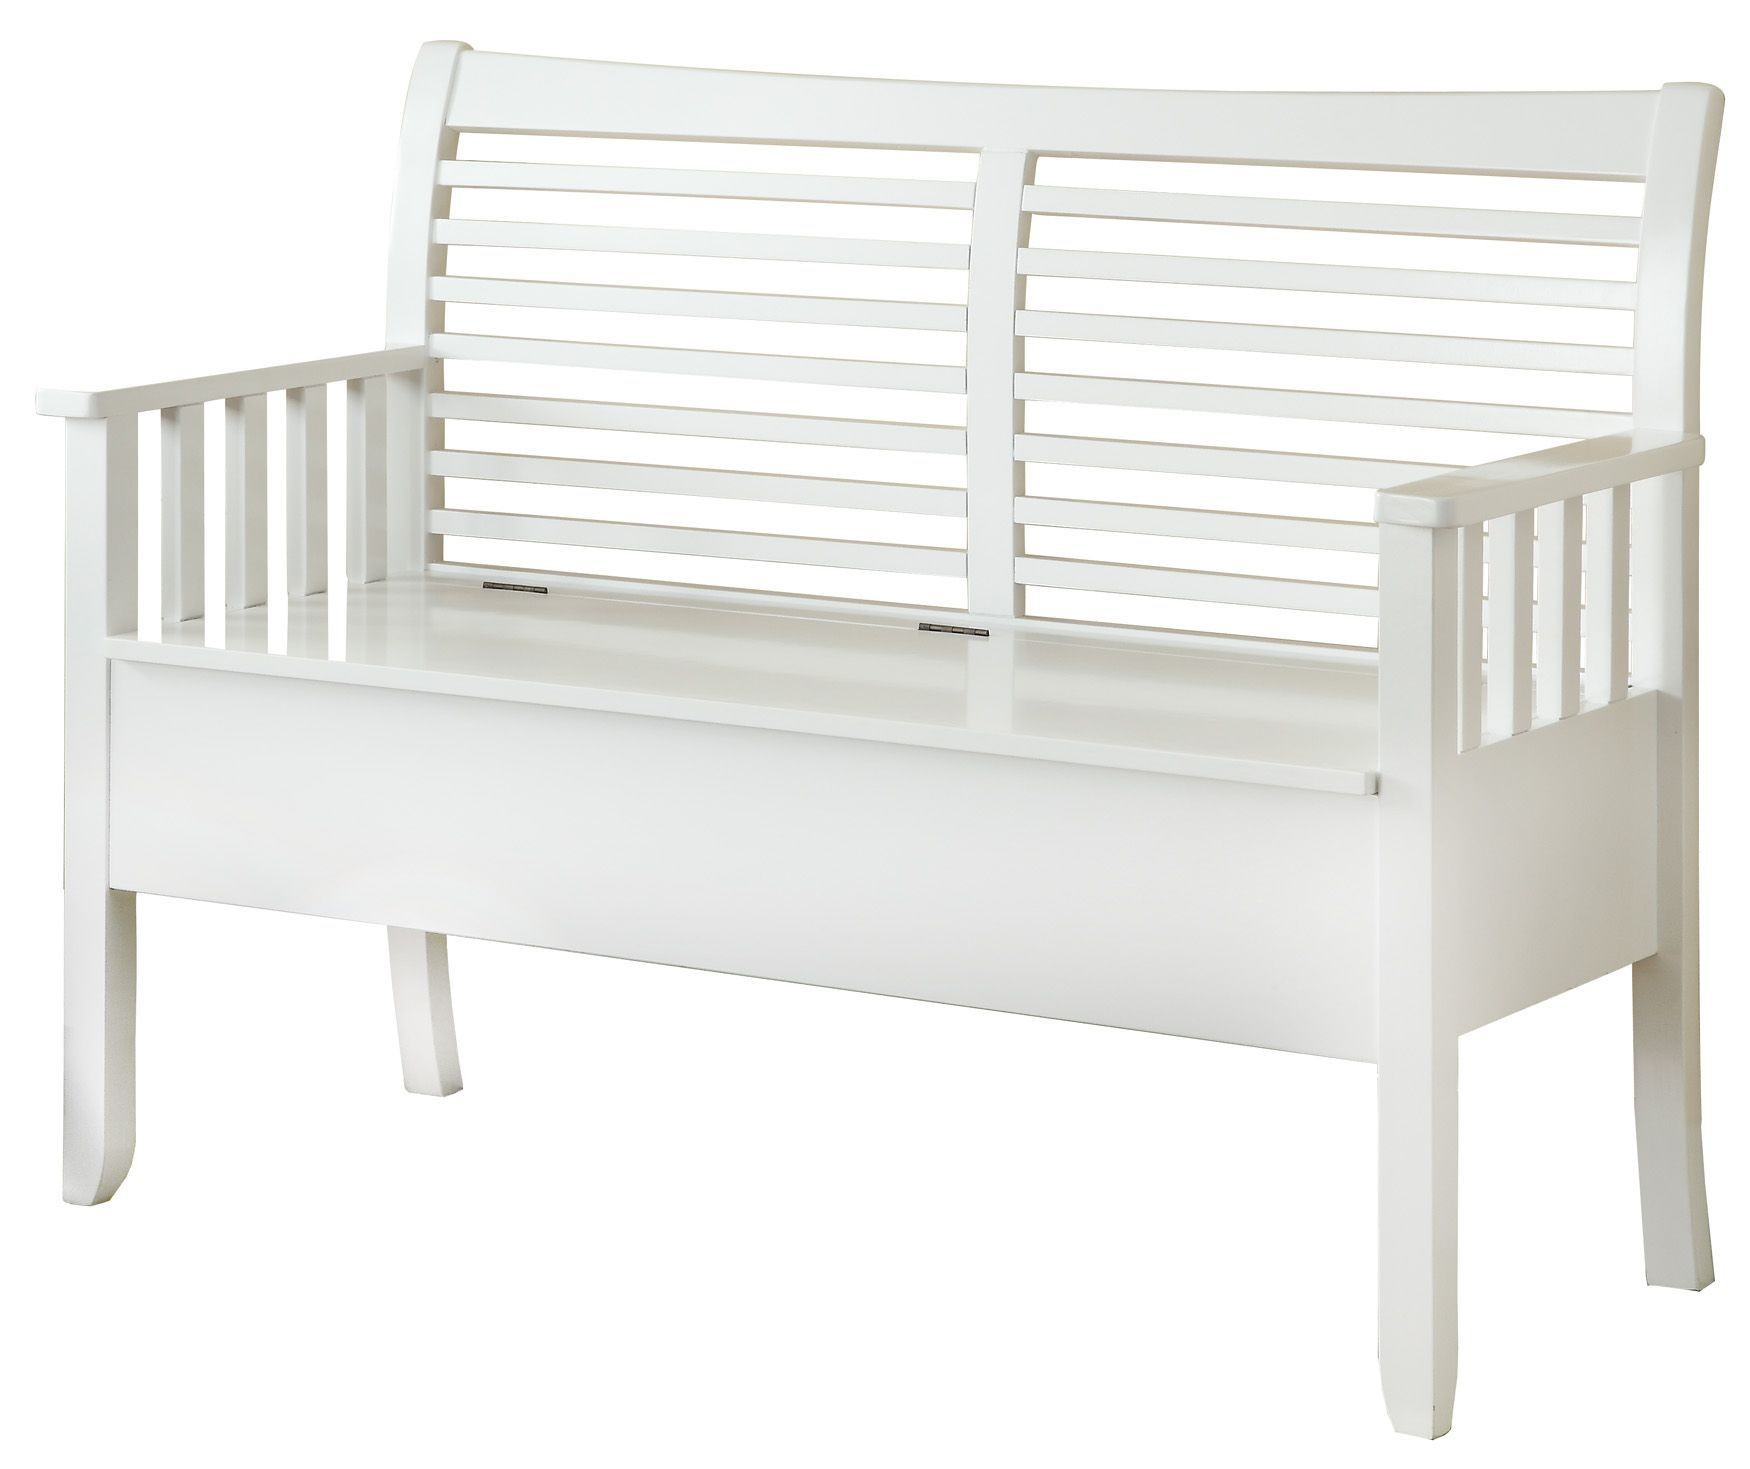 4506 White Solid Wood Storage Bench I 4506 Monarch